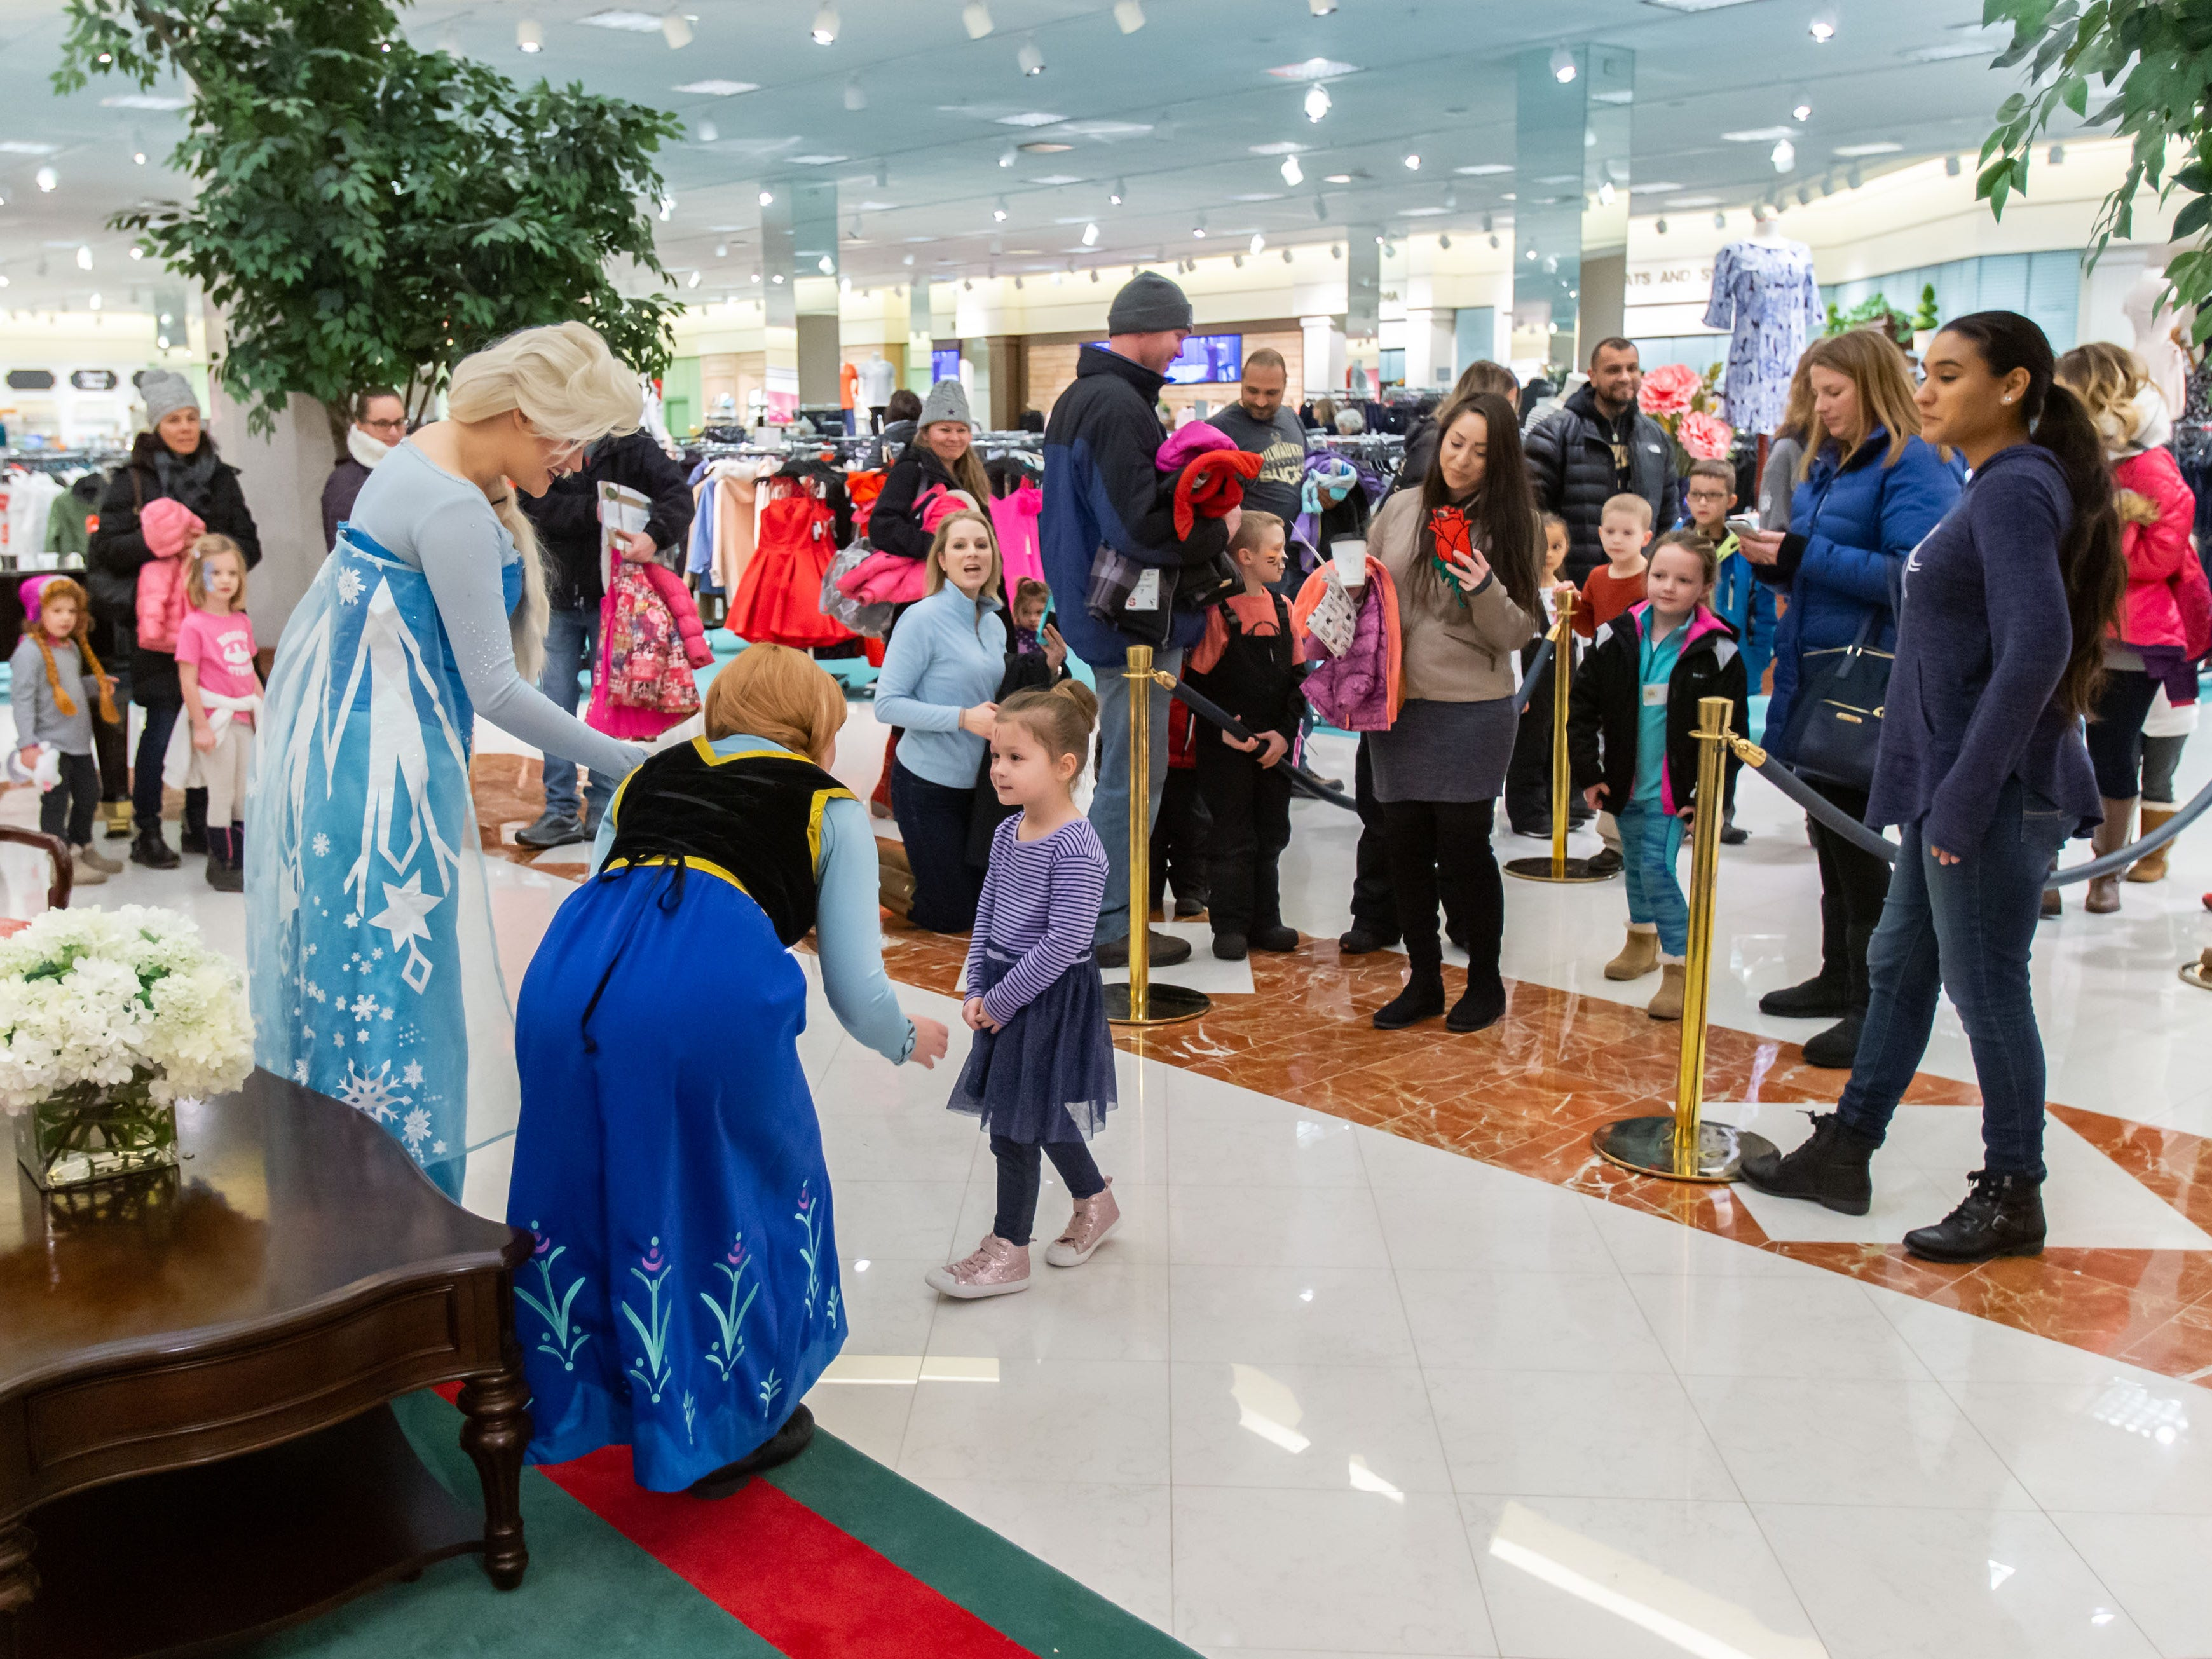 """Families gather to meet the """"Frozen"""" princesses, Elsa and Anna, inside the Von Maur department store during Winter Fest at The Corners of Brookfield on Saturday, Jan. 12, 2019. The event included the Wisconsin State Ice Carving Championships, a screening of the movie """"Frozen"""", face painting, a caricature artist and much more."""